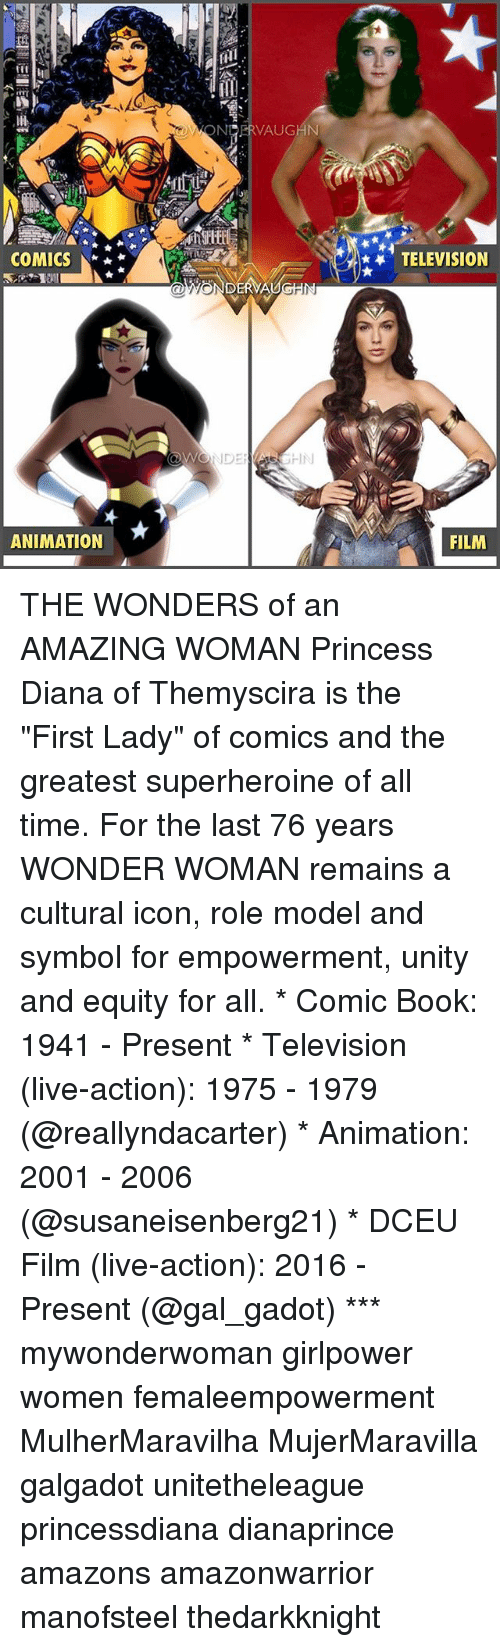 "equity: OWONERVAUGHN  COMICS  TELEVISION  ANIMATION  FILM THE WONDERS of an AMAZING WOMAN Princess Diana of Themyscira is the ""First Lady"" of comics and the greatest superheroine of all time. For the last 76 years WONDER WOMAN remains a cultural icon, role model and symbol for empowerment, unity and equity for all. * Comic Book: 1941 - Present * Television (live-action): 1975 - 1979 (@reallyndacarter) * Animation: 2001 - 2006 (@susaneisenberg21) * DCEU Film (live-action): 2016 - Present (@gal_gadot) *** mywonderwoman girlpower women femaleempowerment MulherMaravilha MujerMaravilla galgadot unitetheleague princessdiana dianaprince amazons amazonwarrior manofsteel thedarkknight"